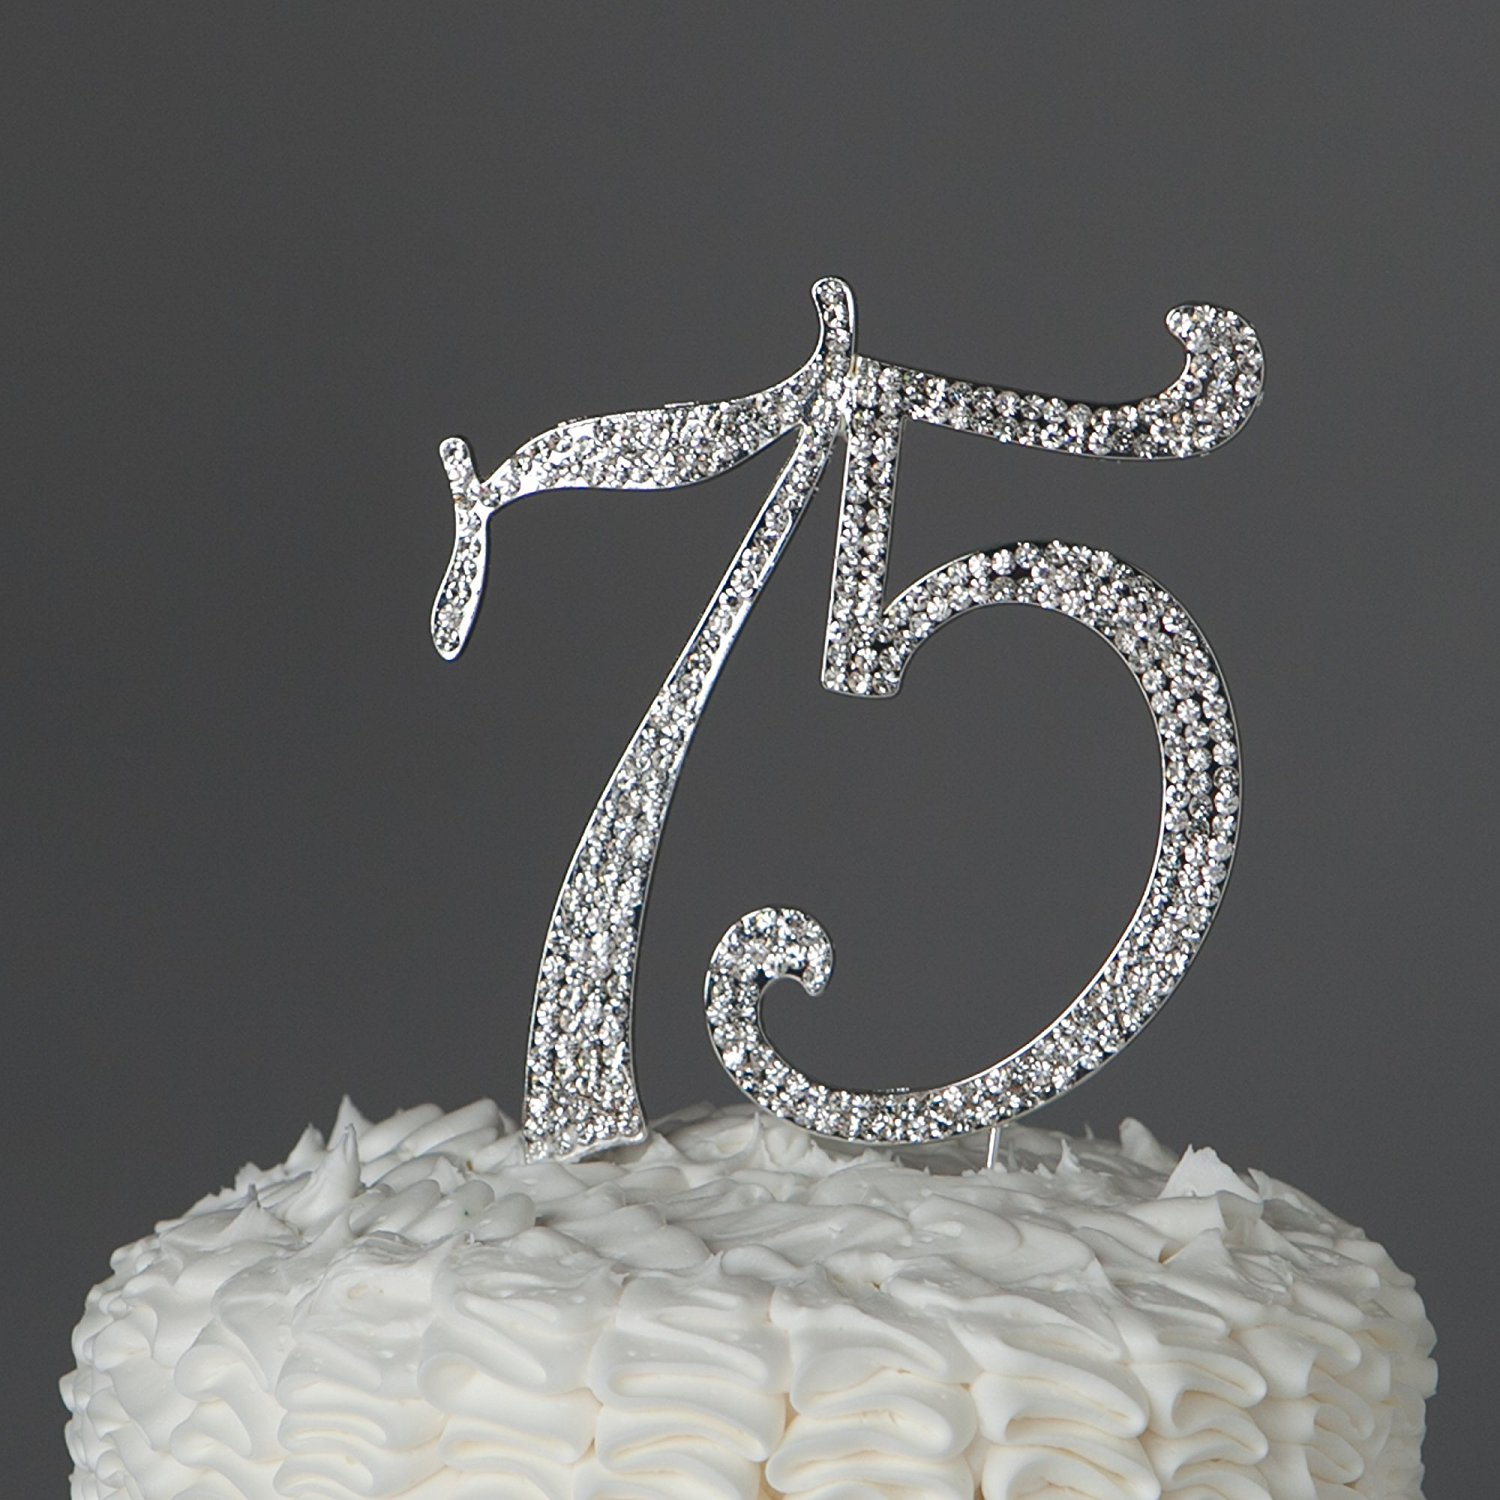 75 Cake Topper For 75th Birthday Or Anniversary Party Crystal